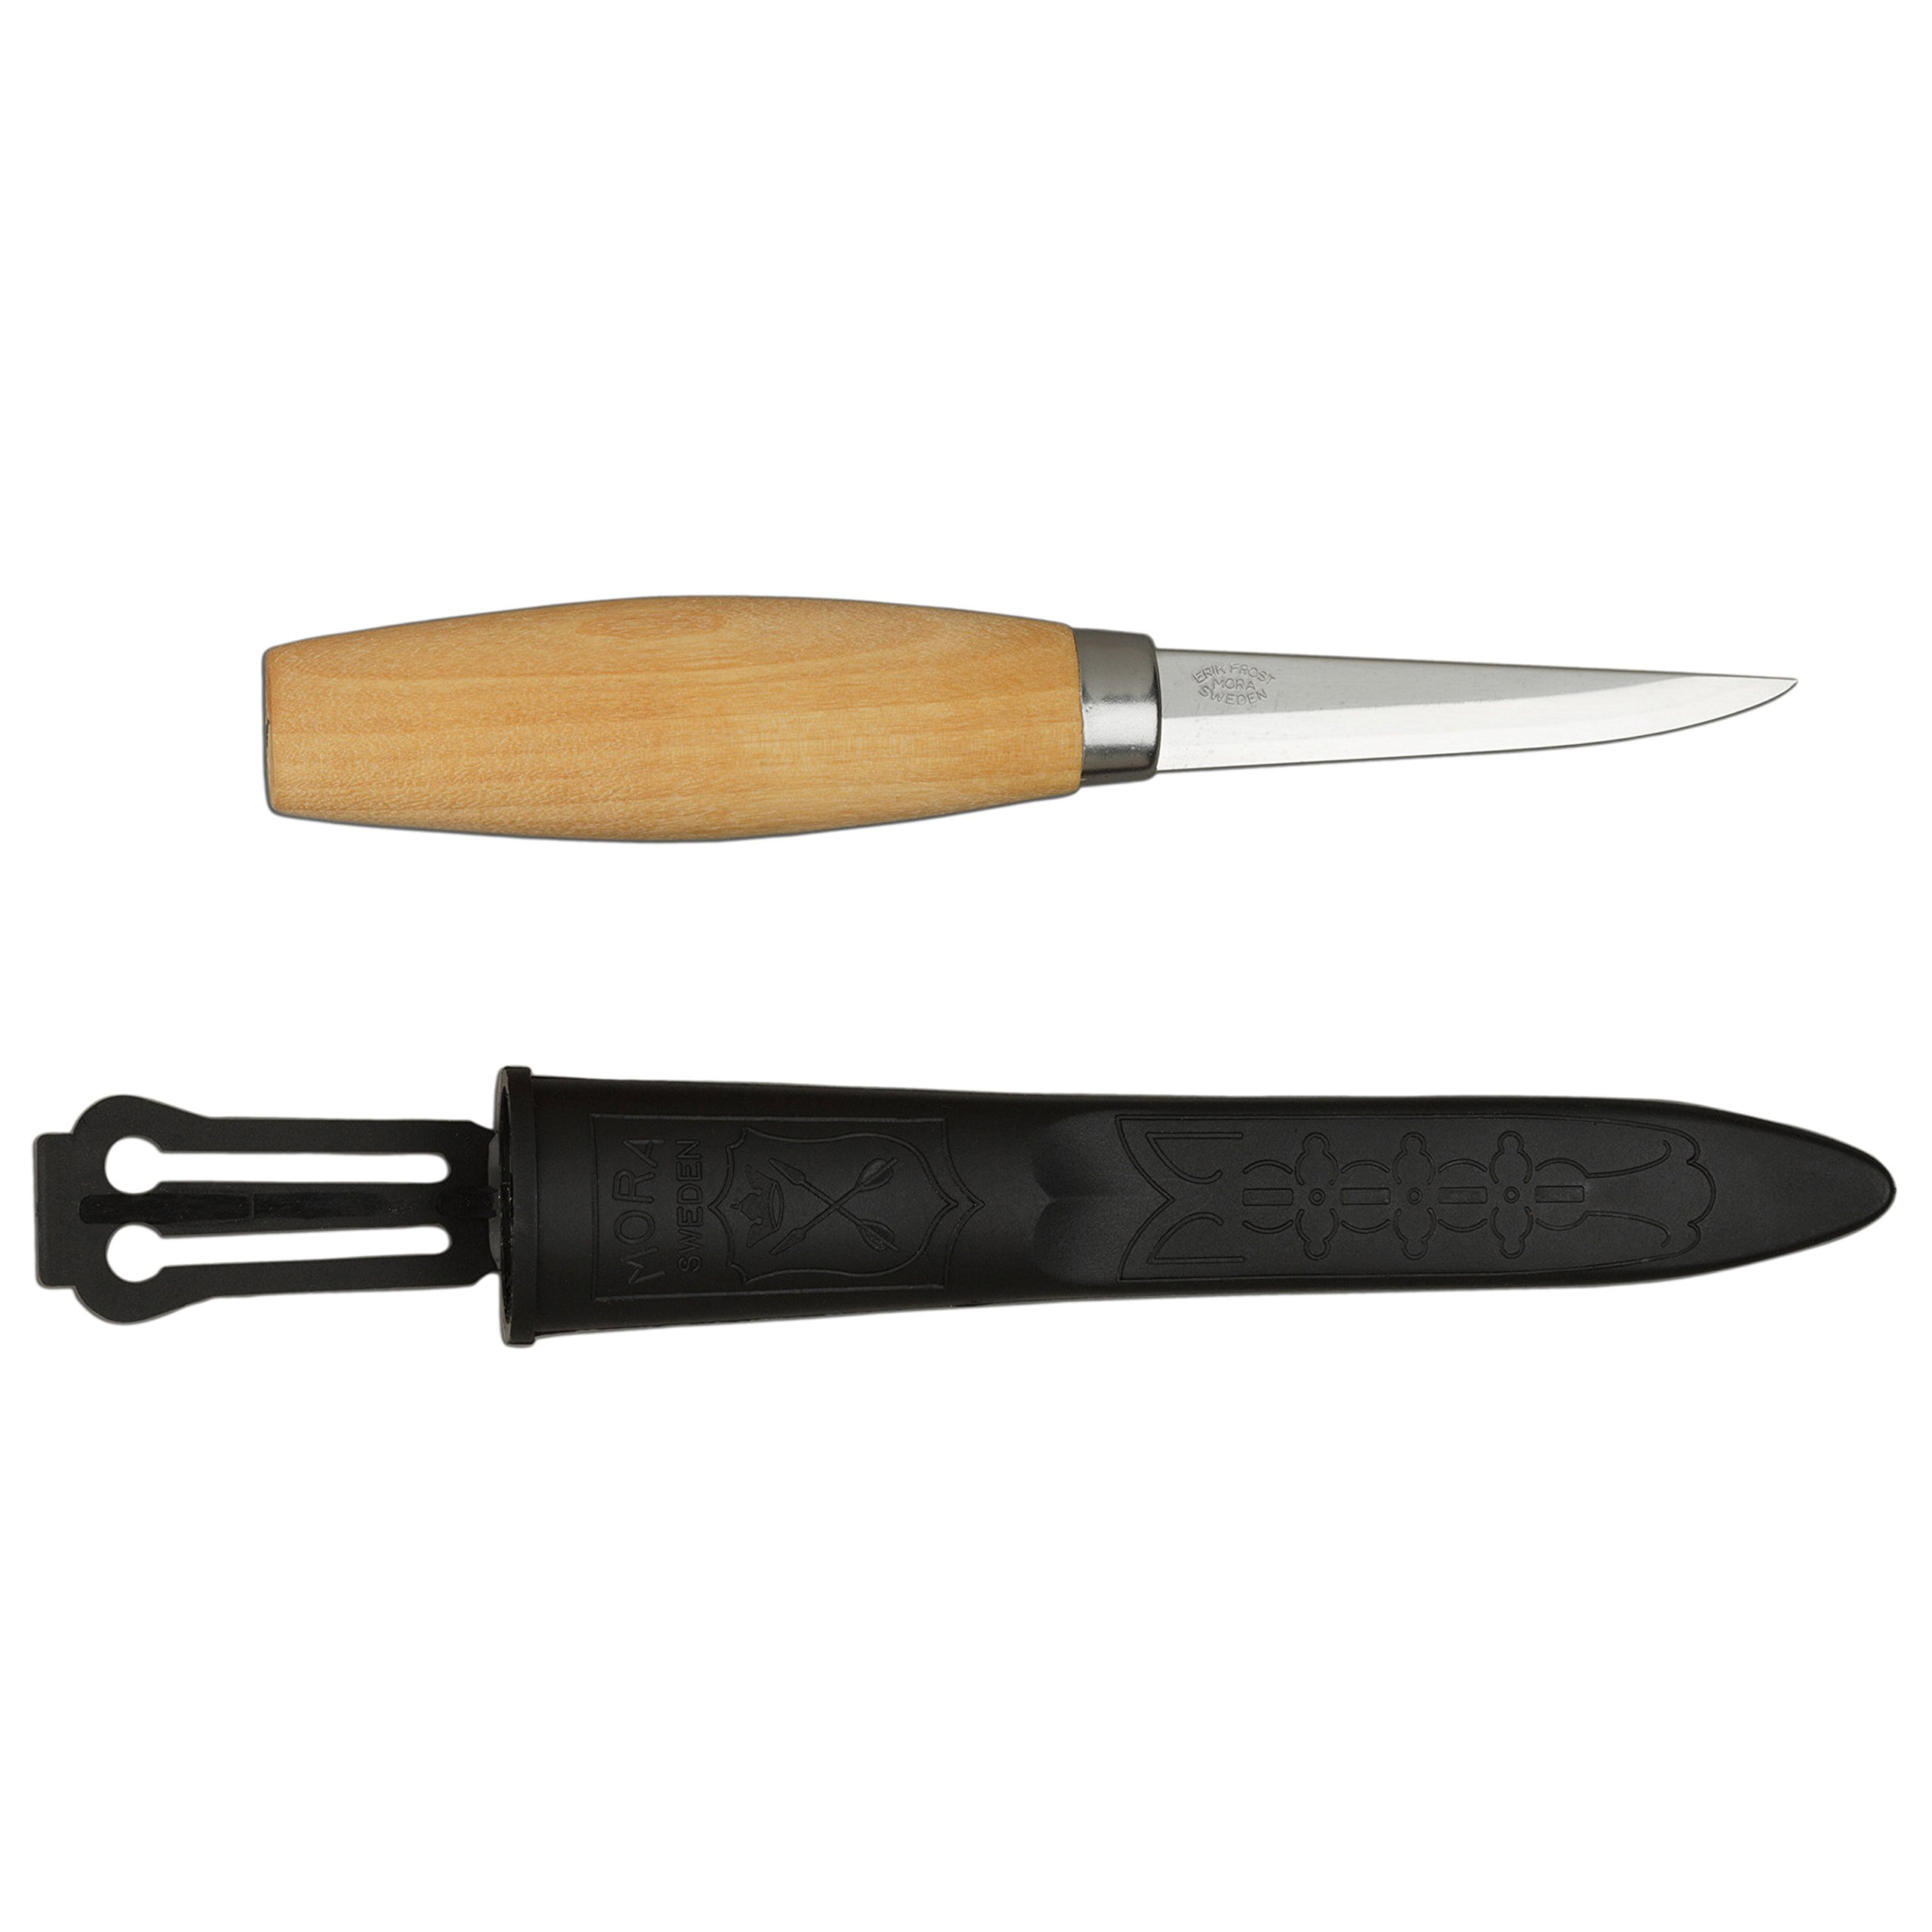 Morakniv Wood Carving 106 Knife with Laminated Steel Blade, 3.2-Inch by Morakniv